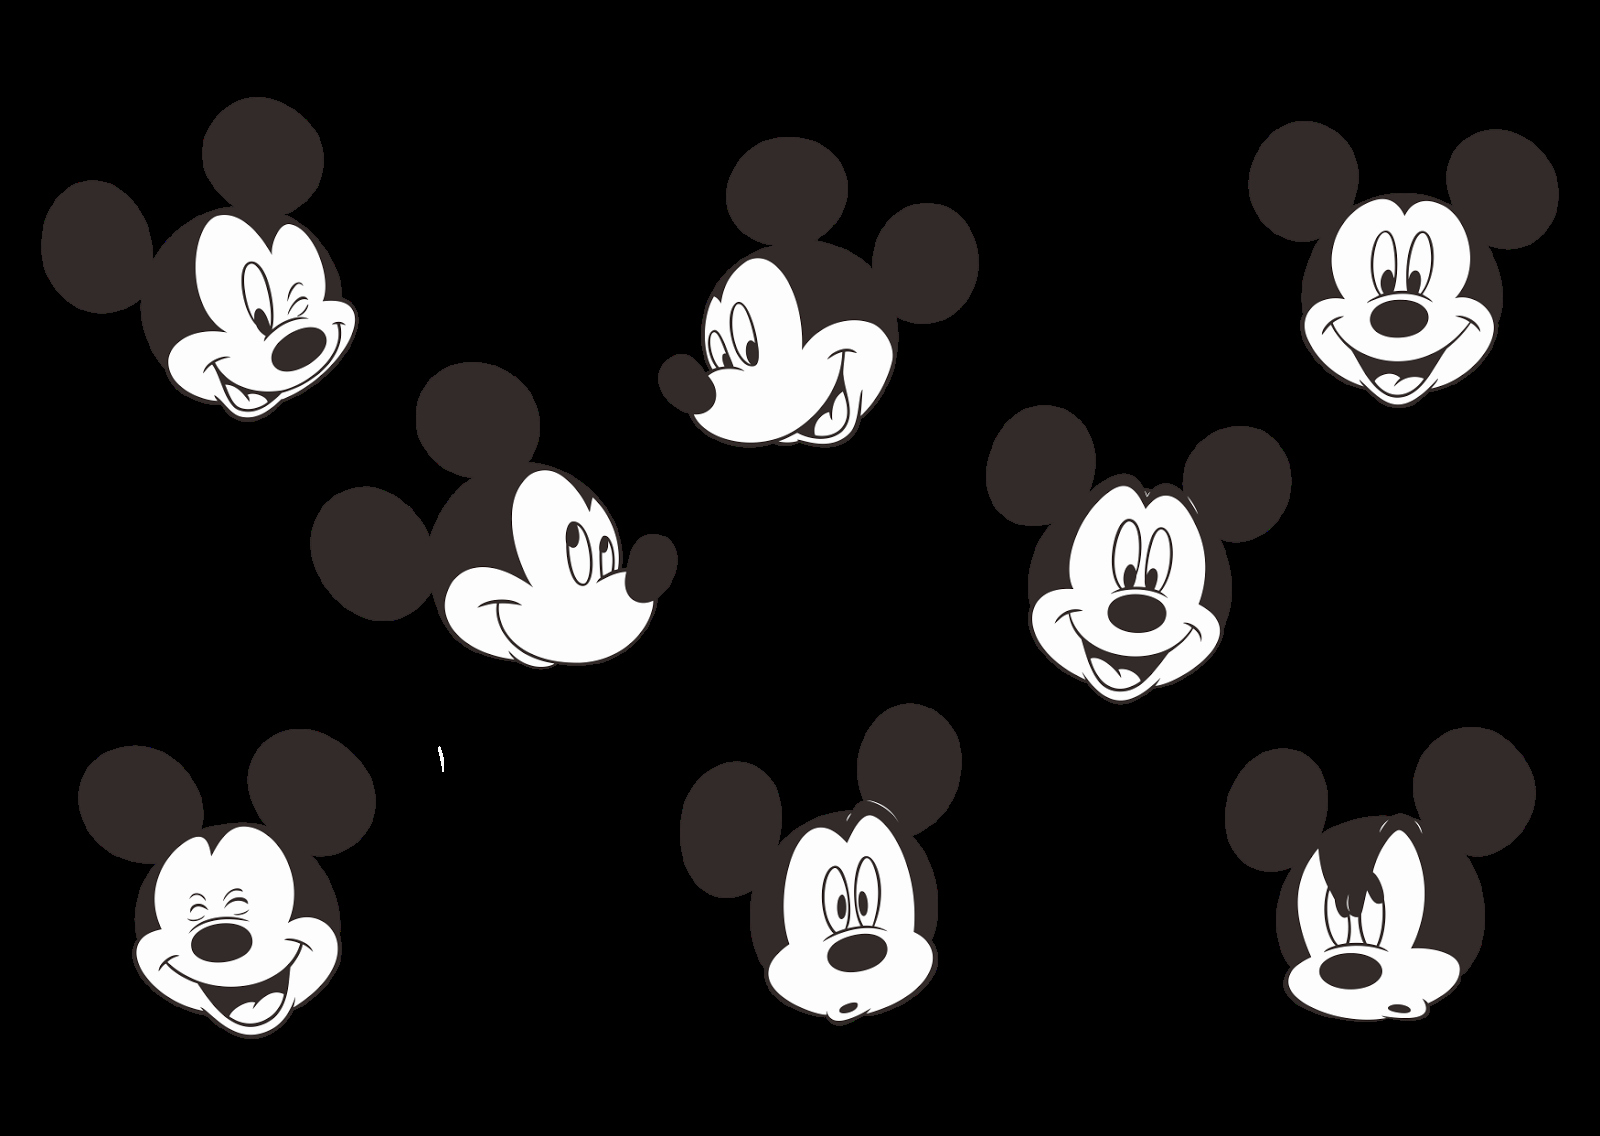 Mickey Mouse Head Stencil Fresh Mickey Mouse Logo Vector Part 2 Black and White format